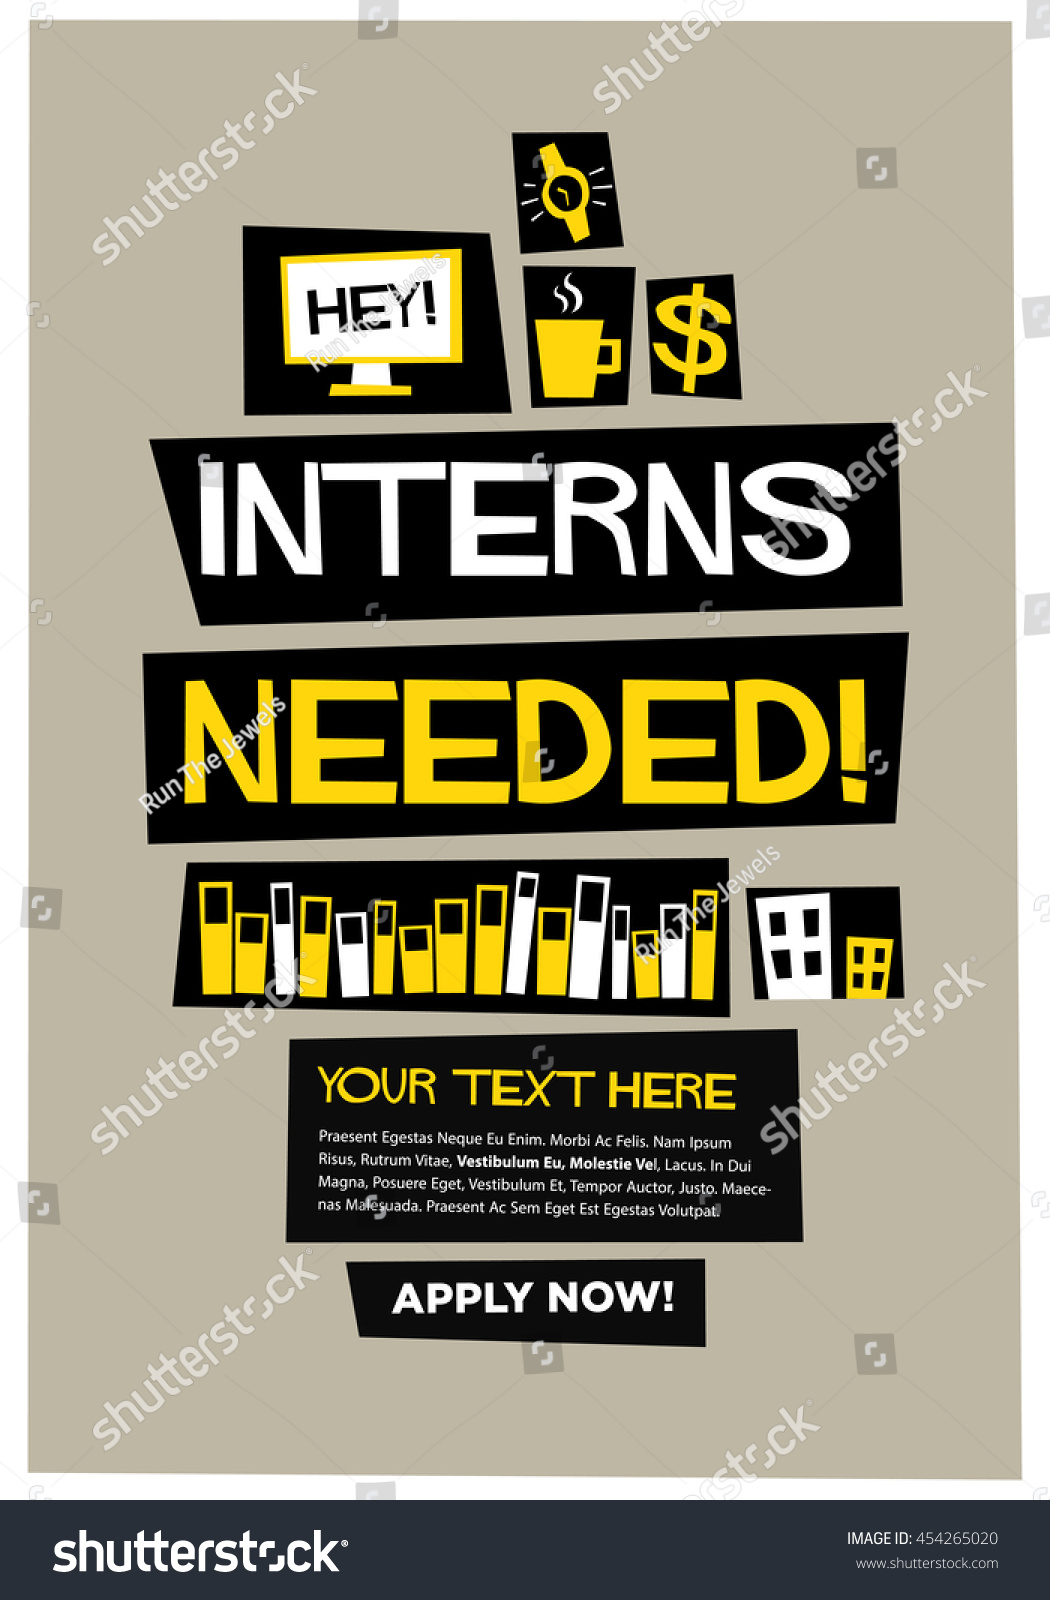 Poster design needed - Interns Needed Flat Style Vector Illustration Recruitment Poster Design With Text Box Template